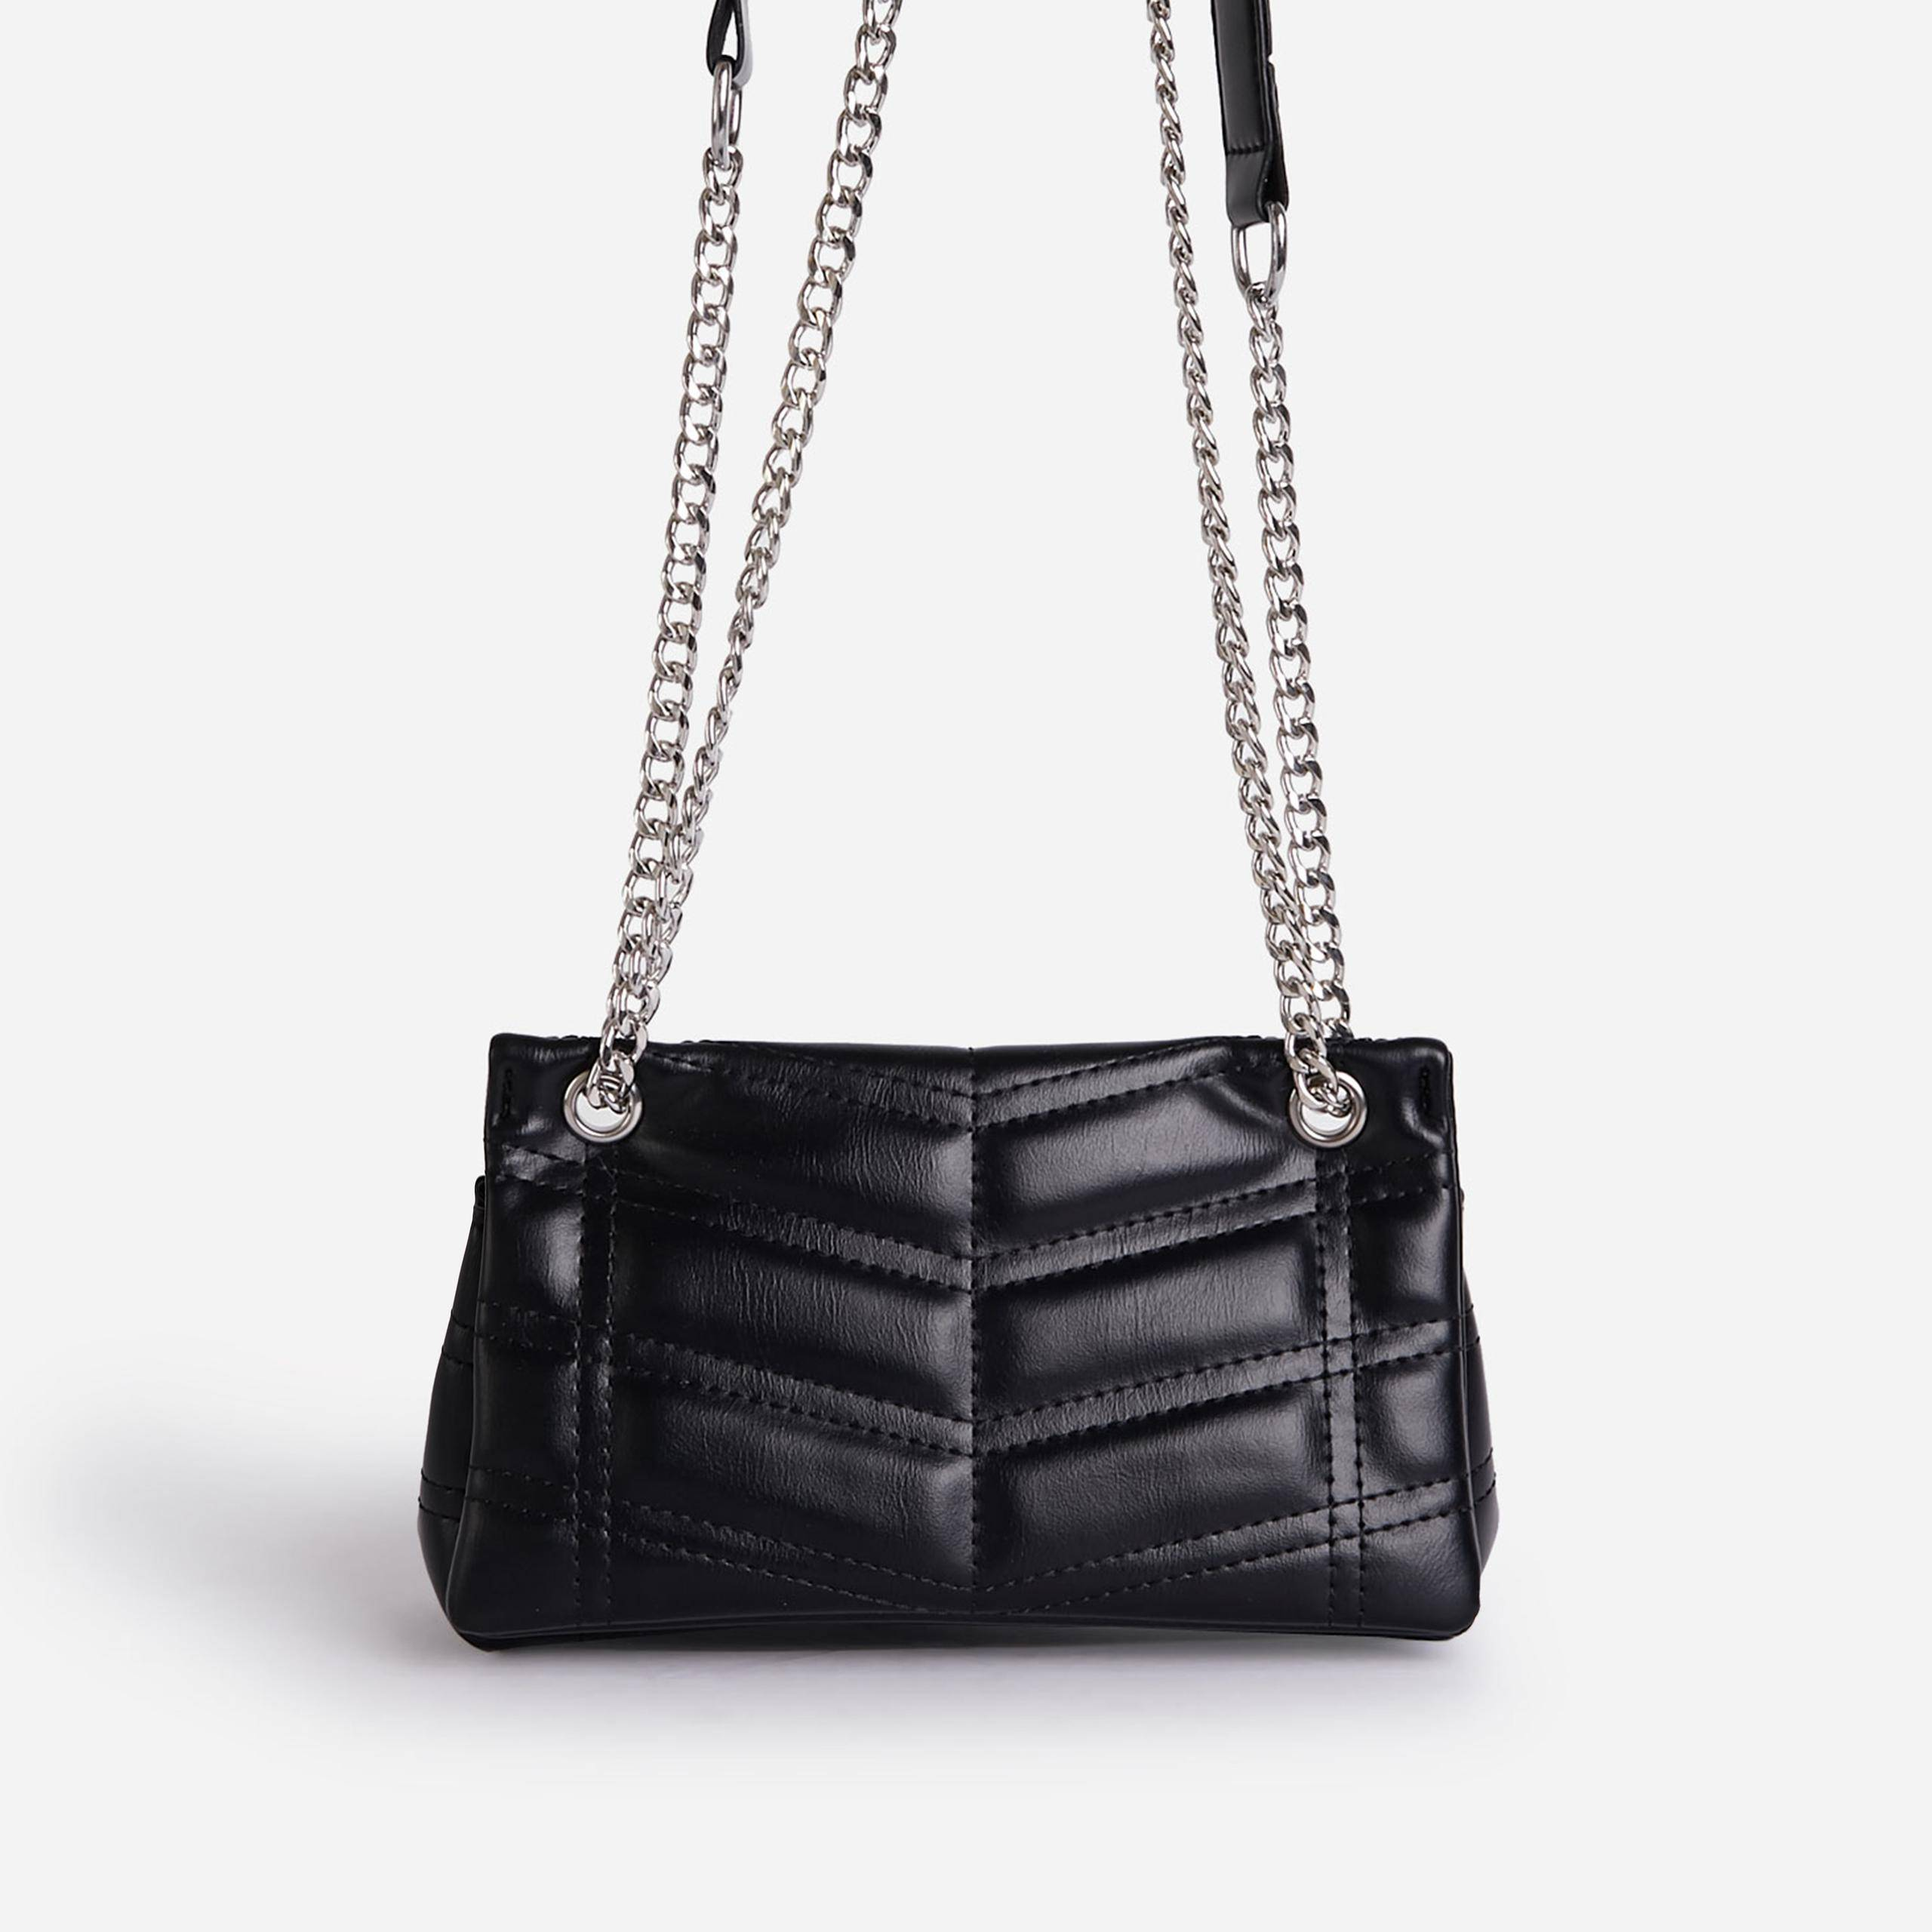 EGO Paddy Chain Strap Quilted Shoulder Bag In Black Faux Leather,, Black  - female - Size: One Size